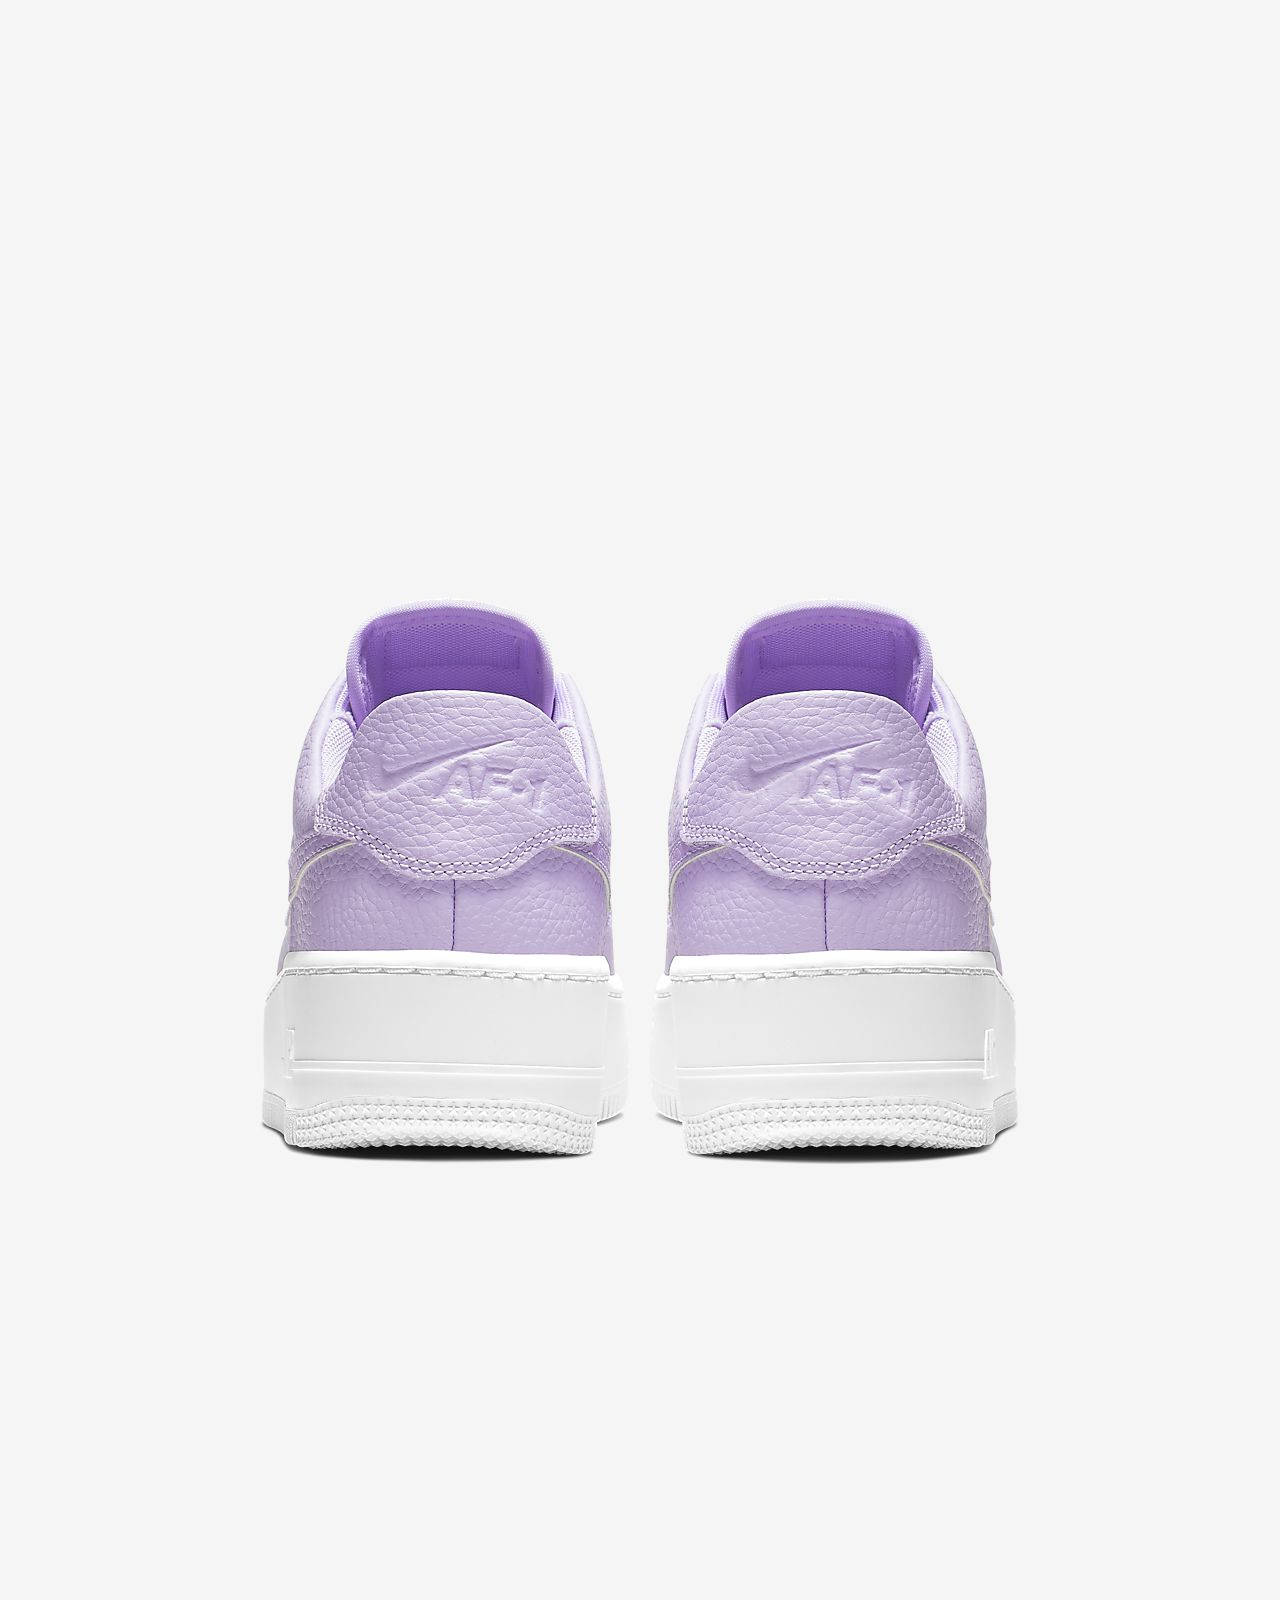 official photos 24446 f40b3 ... Chaussure Nike Air Force 1 Sage Low pour Femme